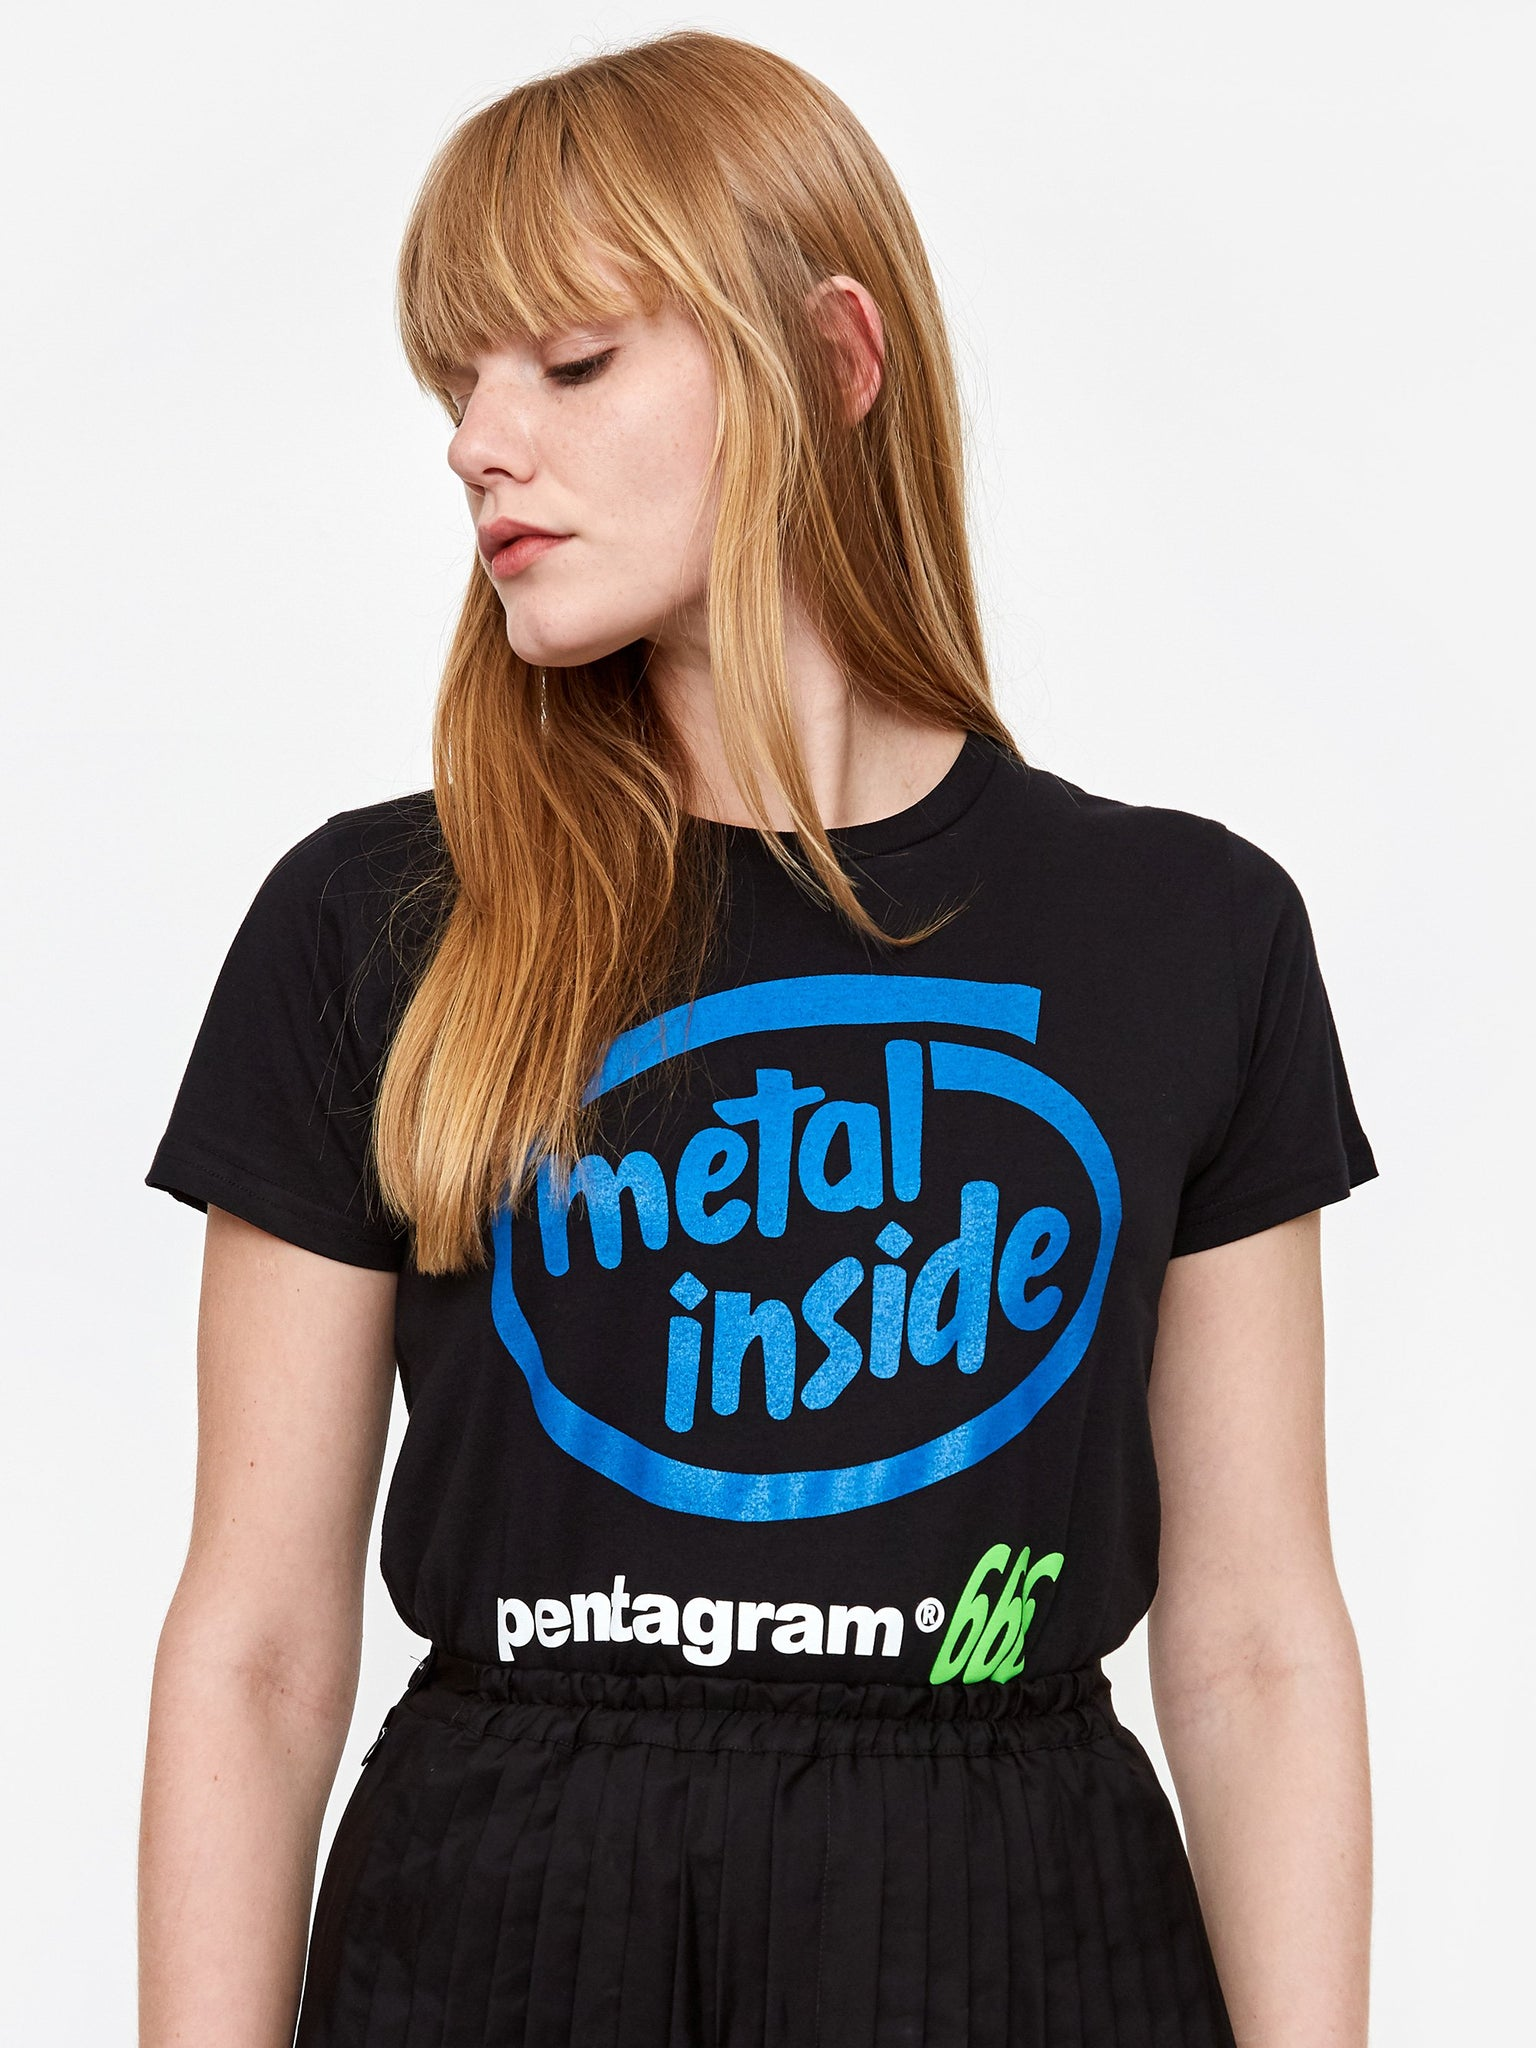 Ashley Williams Metal Inside Shortsleeve T-Shirt - Black/Blue